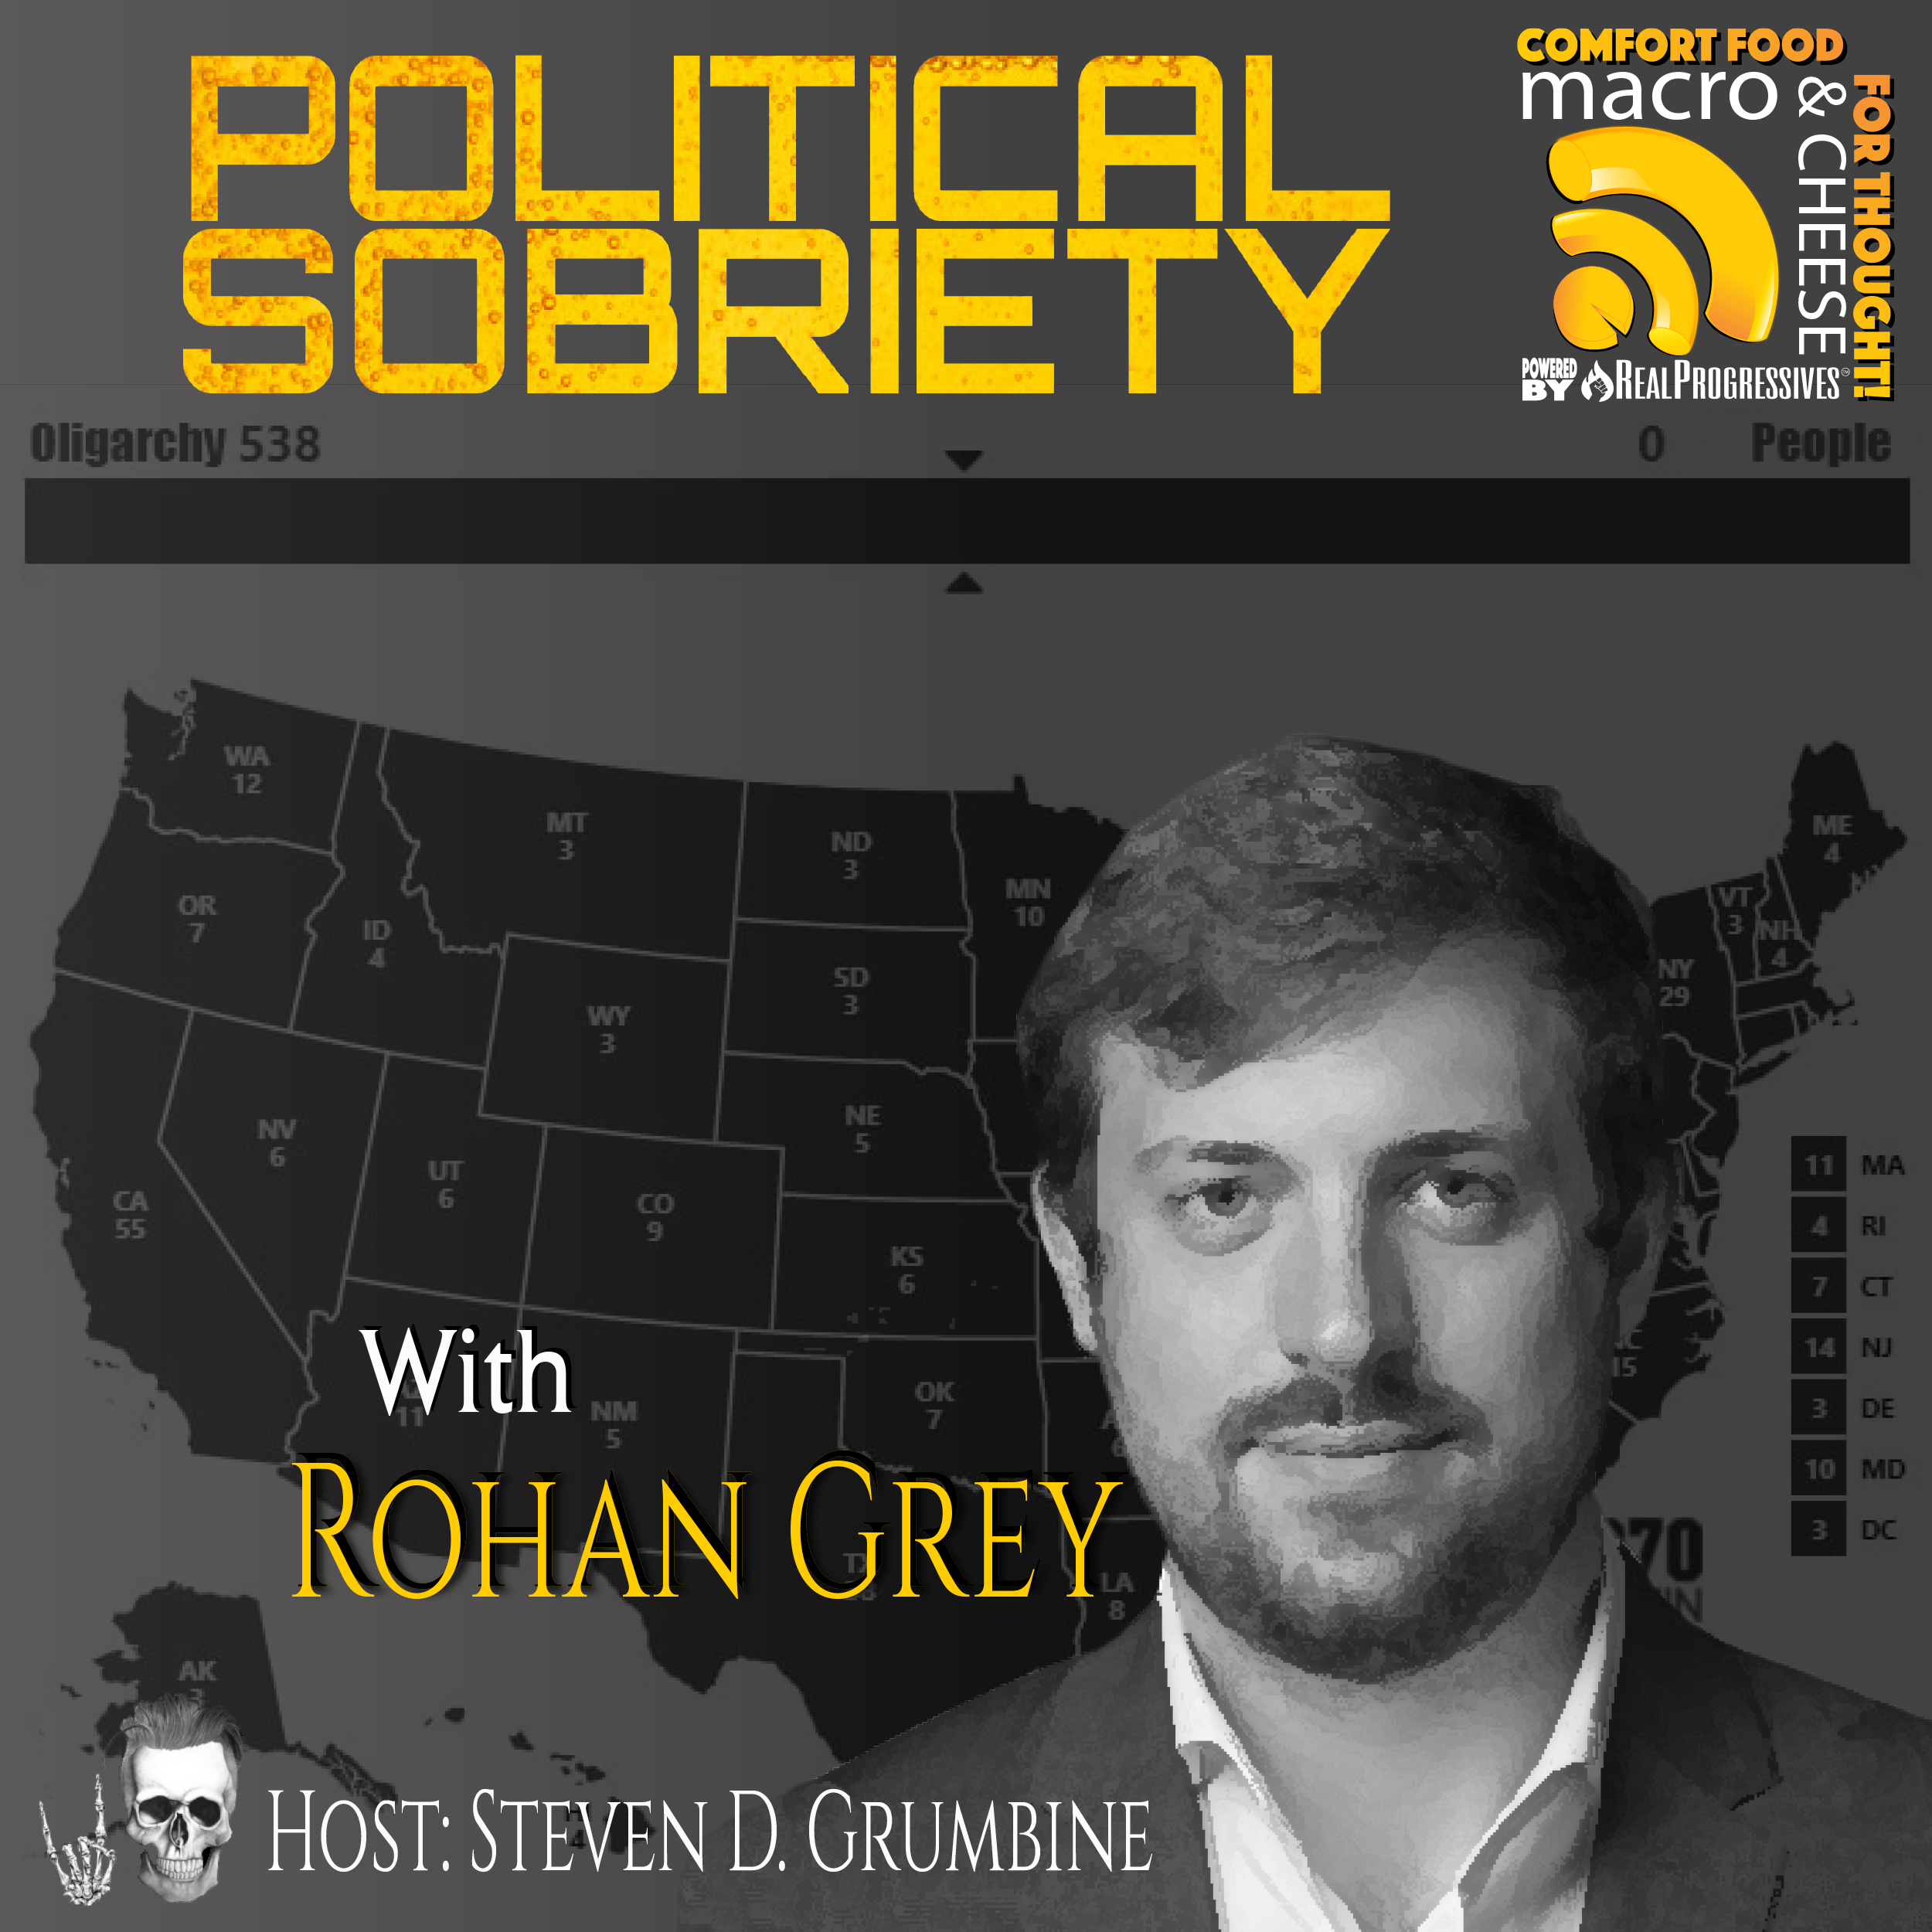 Political Sobriety with Rohan Grey